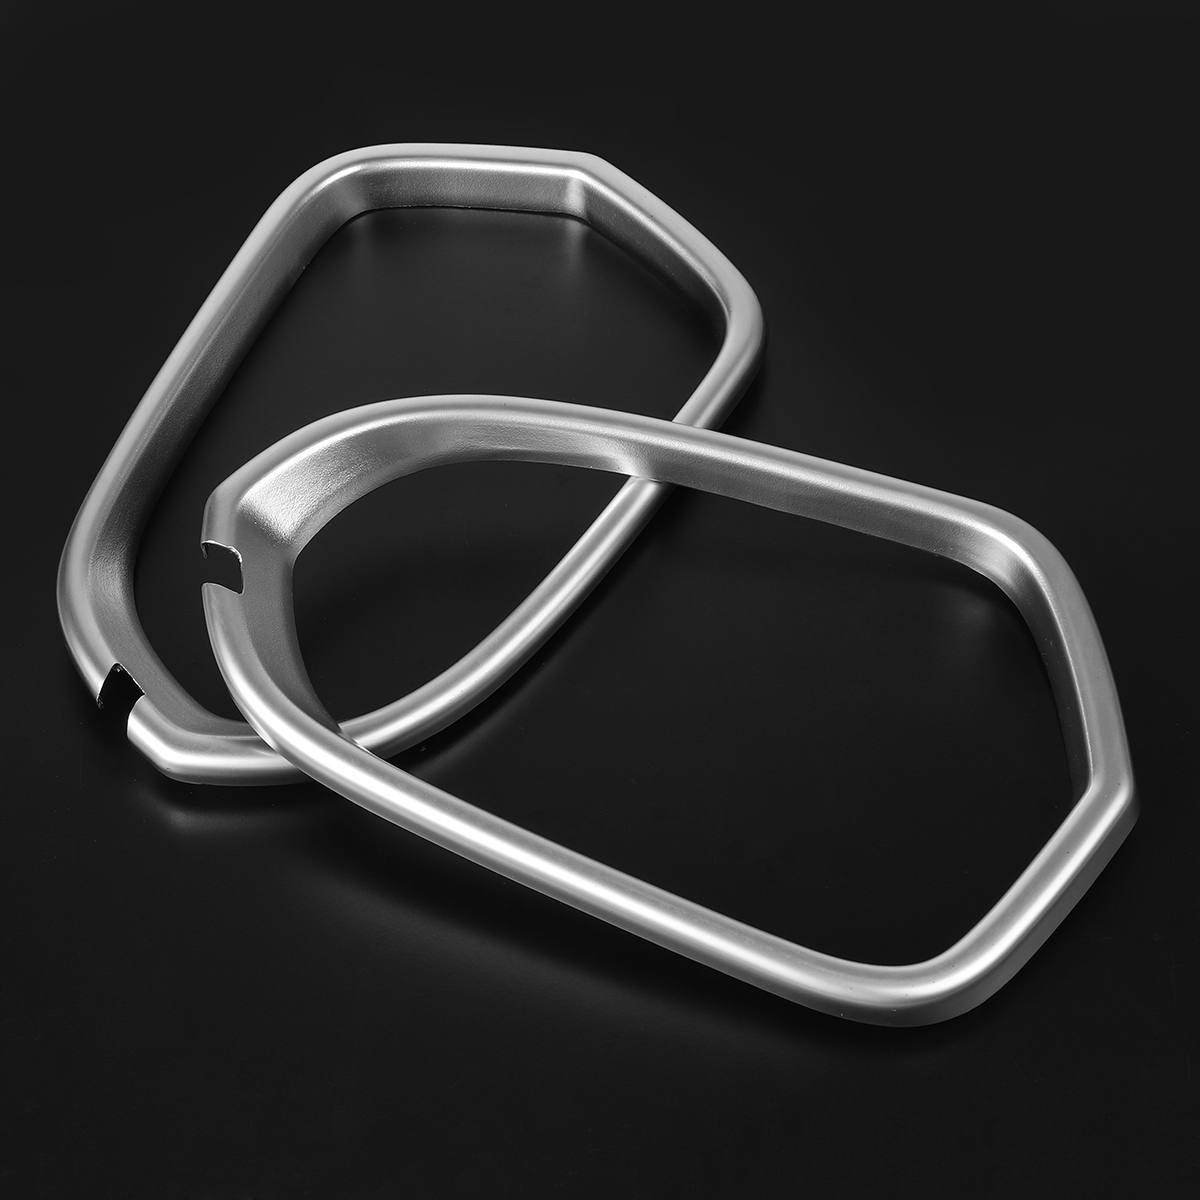 2Pcs Chrome Door ABS Rearview Mirror Decorator Frame Cover Trim For <font><b>Audi</b></font> <font><b>A6</b></font> C7 2012 2013 <font><b>2014</b></font> 2015 2016 2017 Cover Sticker image